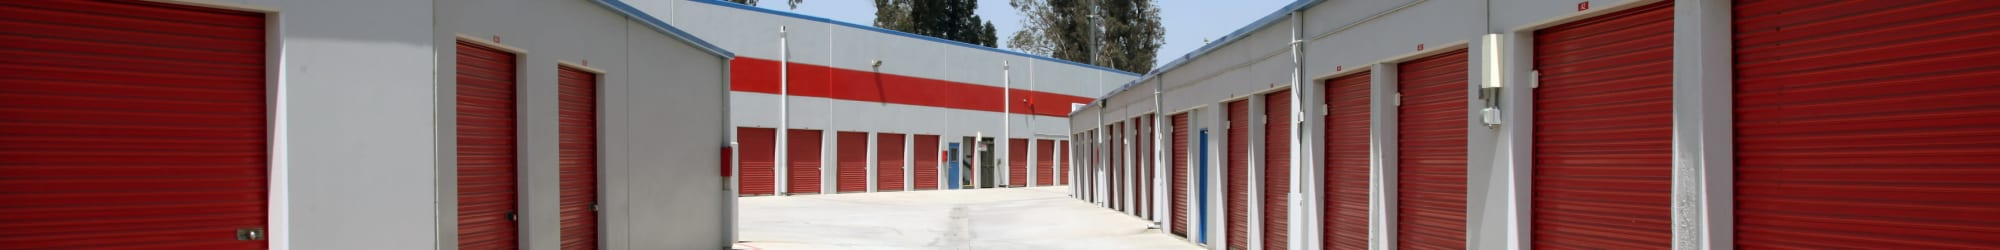 Trojan Storage units for rent in Colton, California